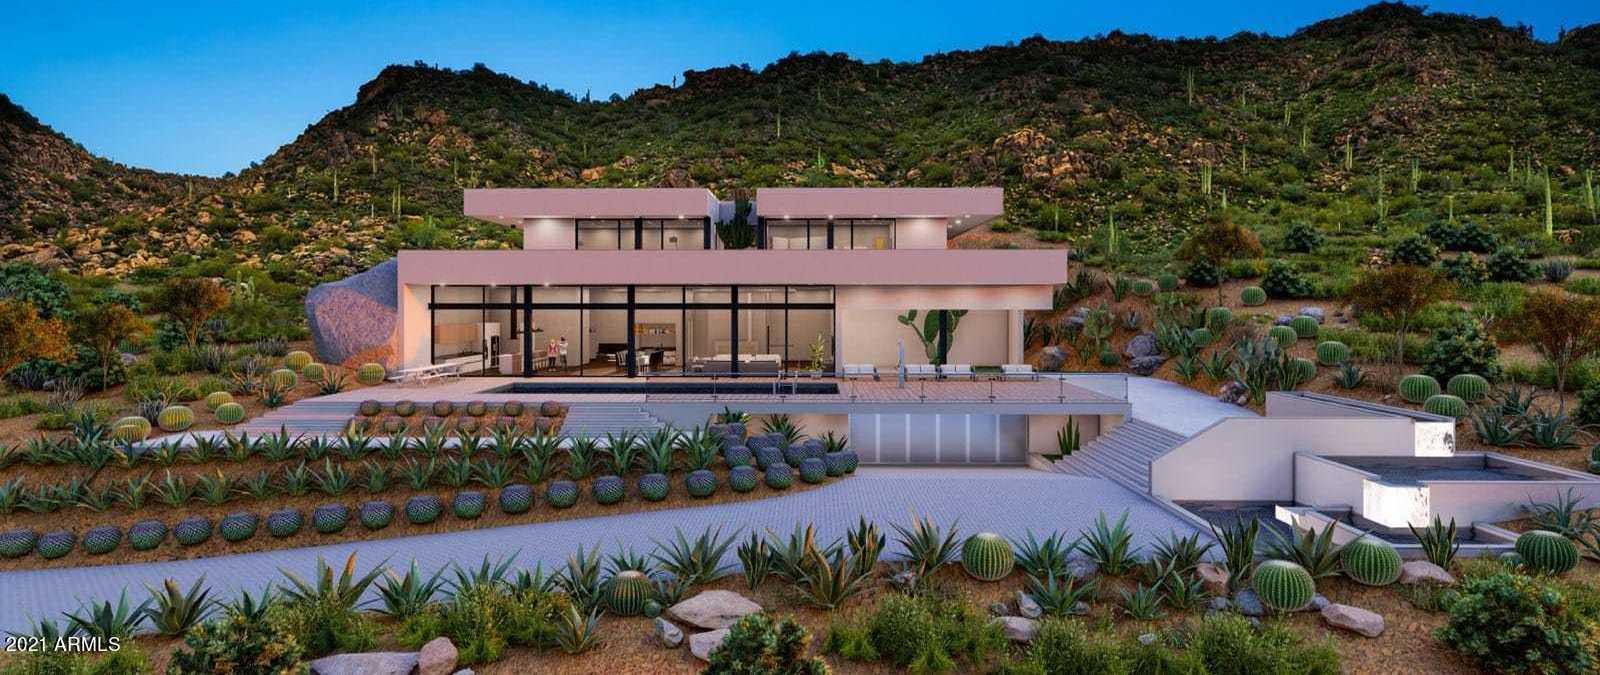 $3,449,500 - 5Br/6Ba - Home for Sale in Eagles Nest Parcel 8, Fountain Hills